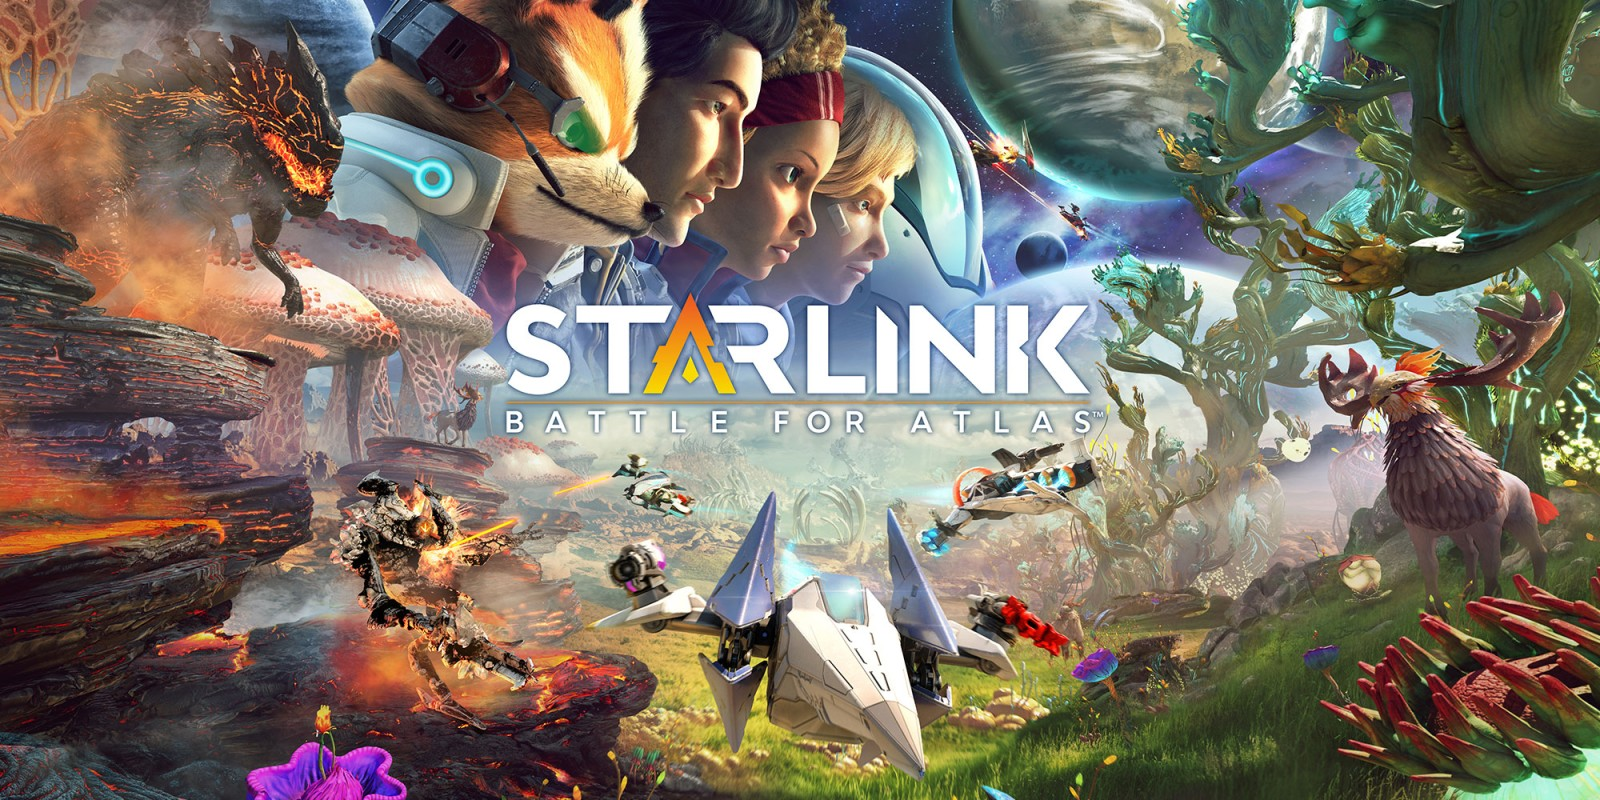 Starlink: Battle for Atlas is the best non-Star Fox Star Fox Game